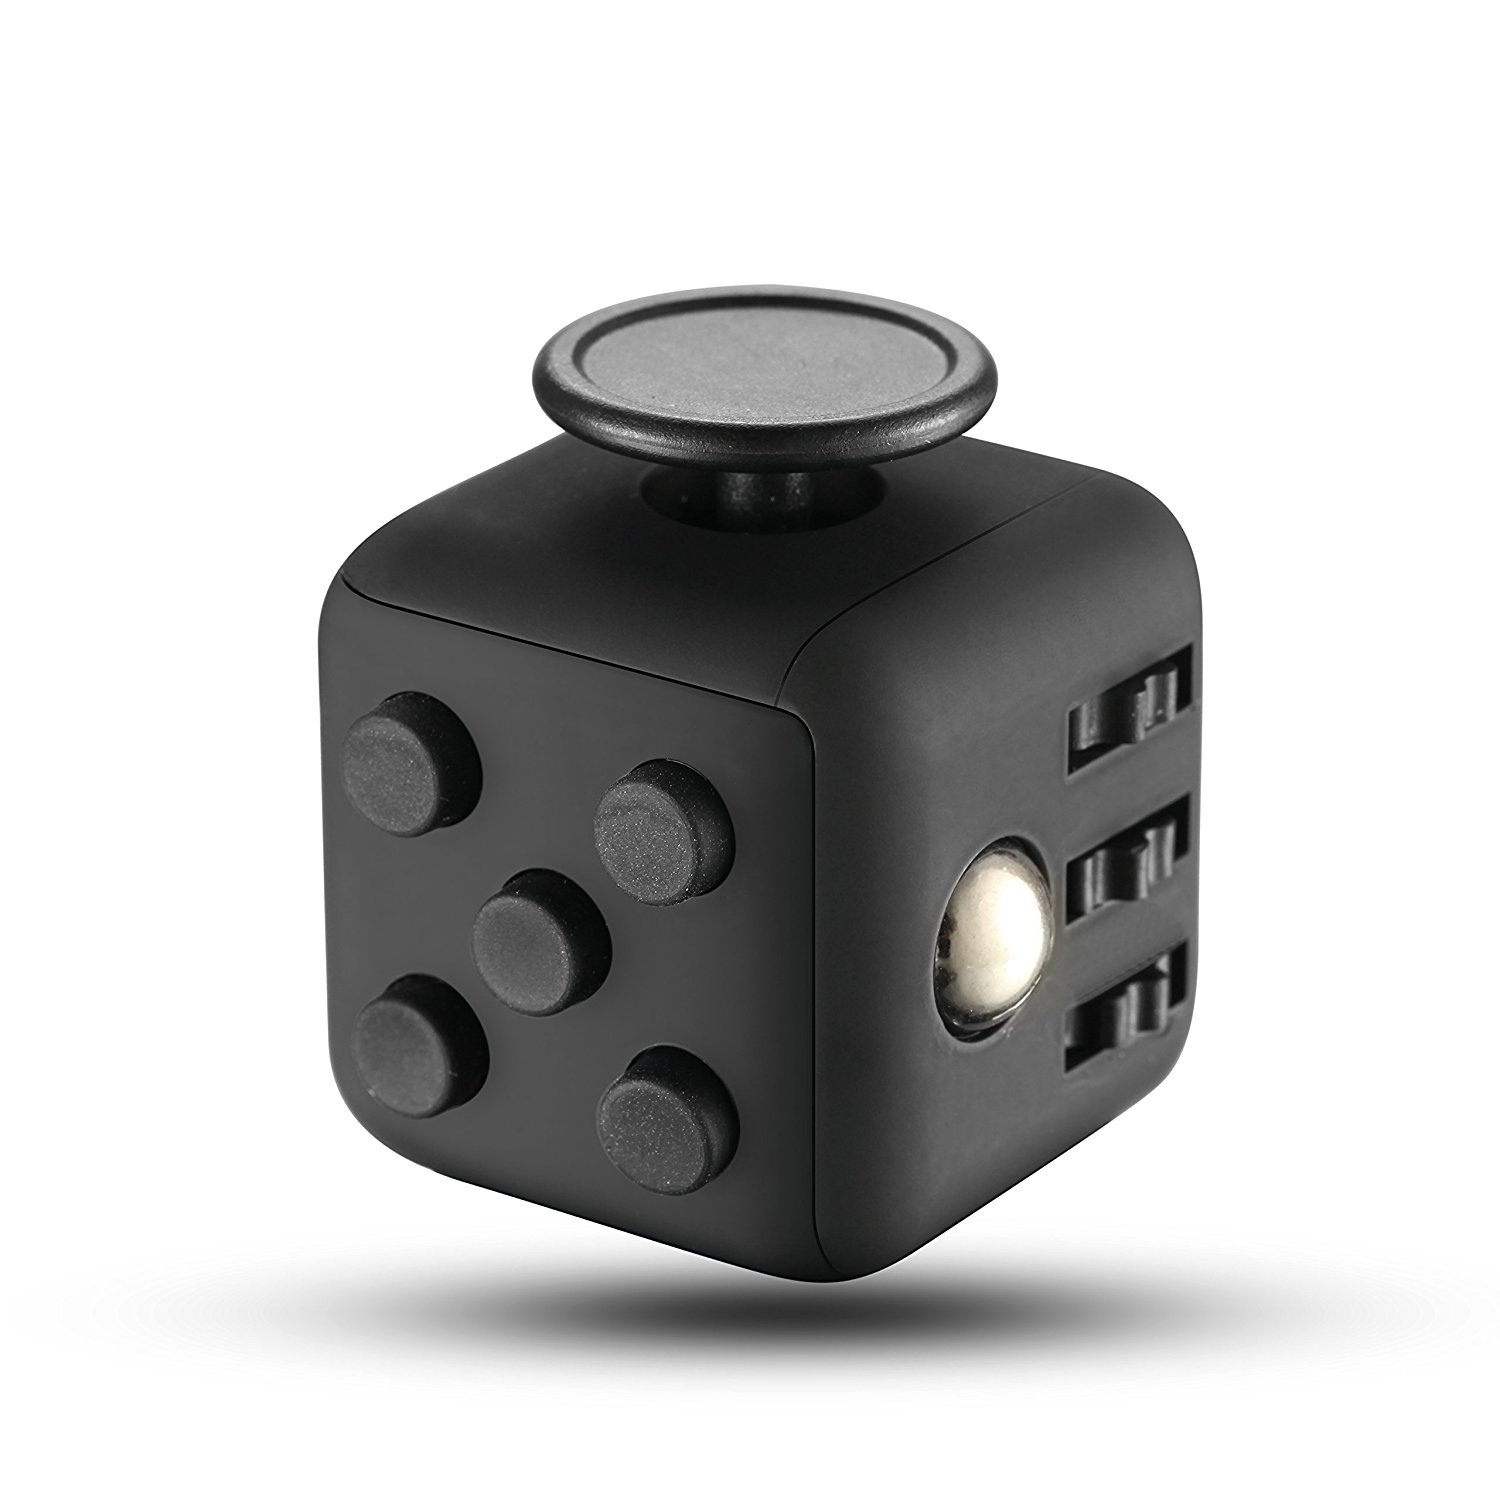 71 32nD1maL. SL1500  - TopQPS Fidget Cube - Relieves Anxiety for Children and Adults - Stress Reliever